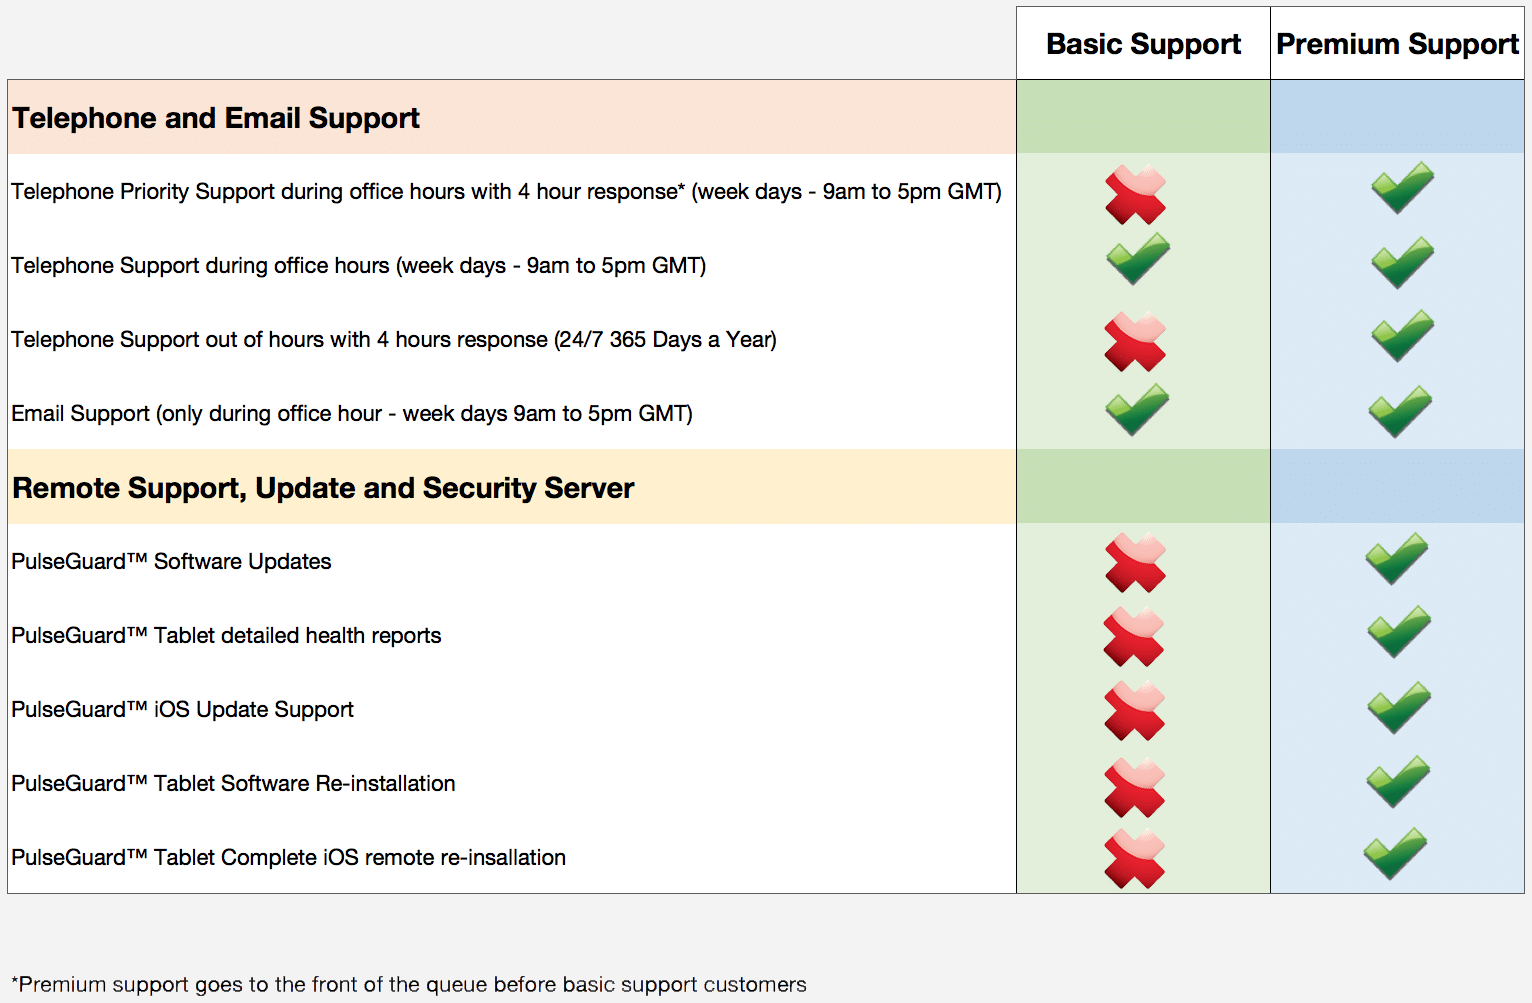 Support Comparison Chart - Greybg